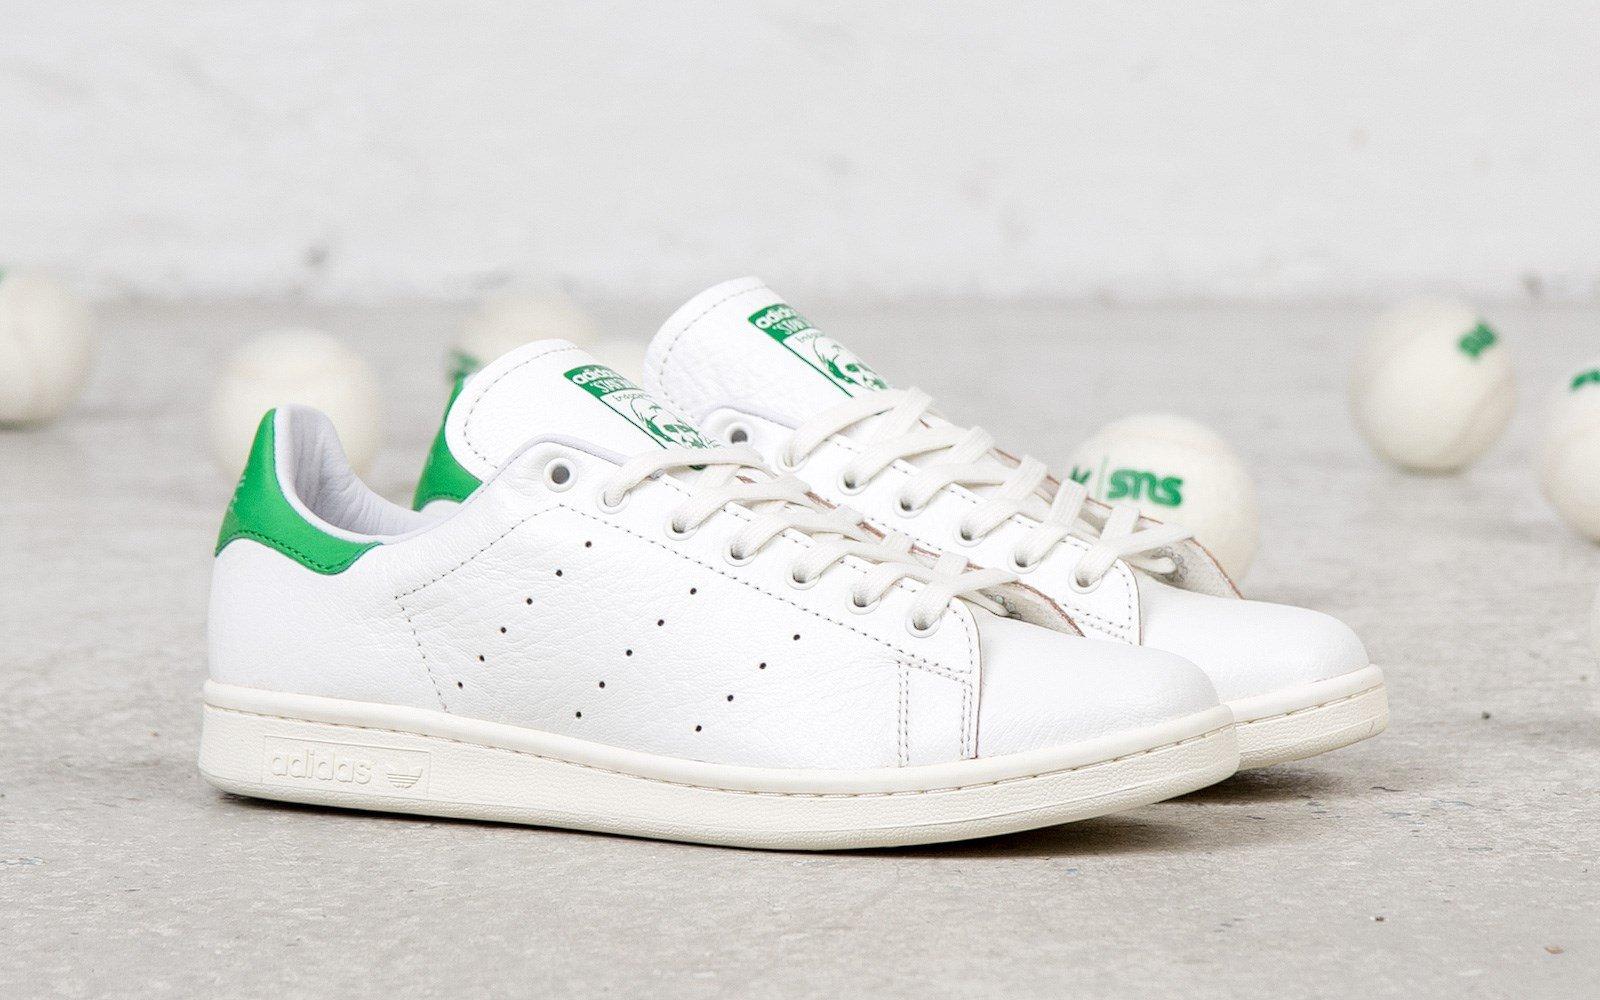 adidas-originals-consortium-stan-smith-aniline-leather-detailed-images-1